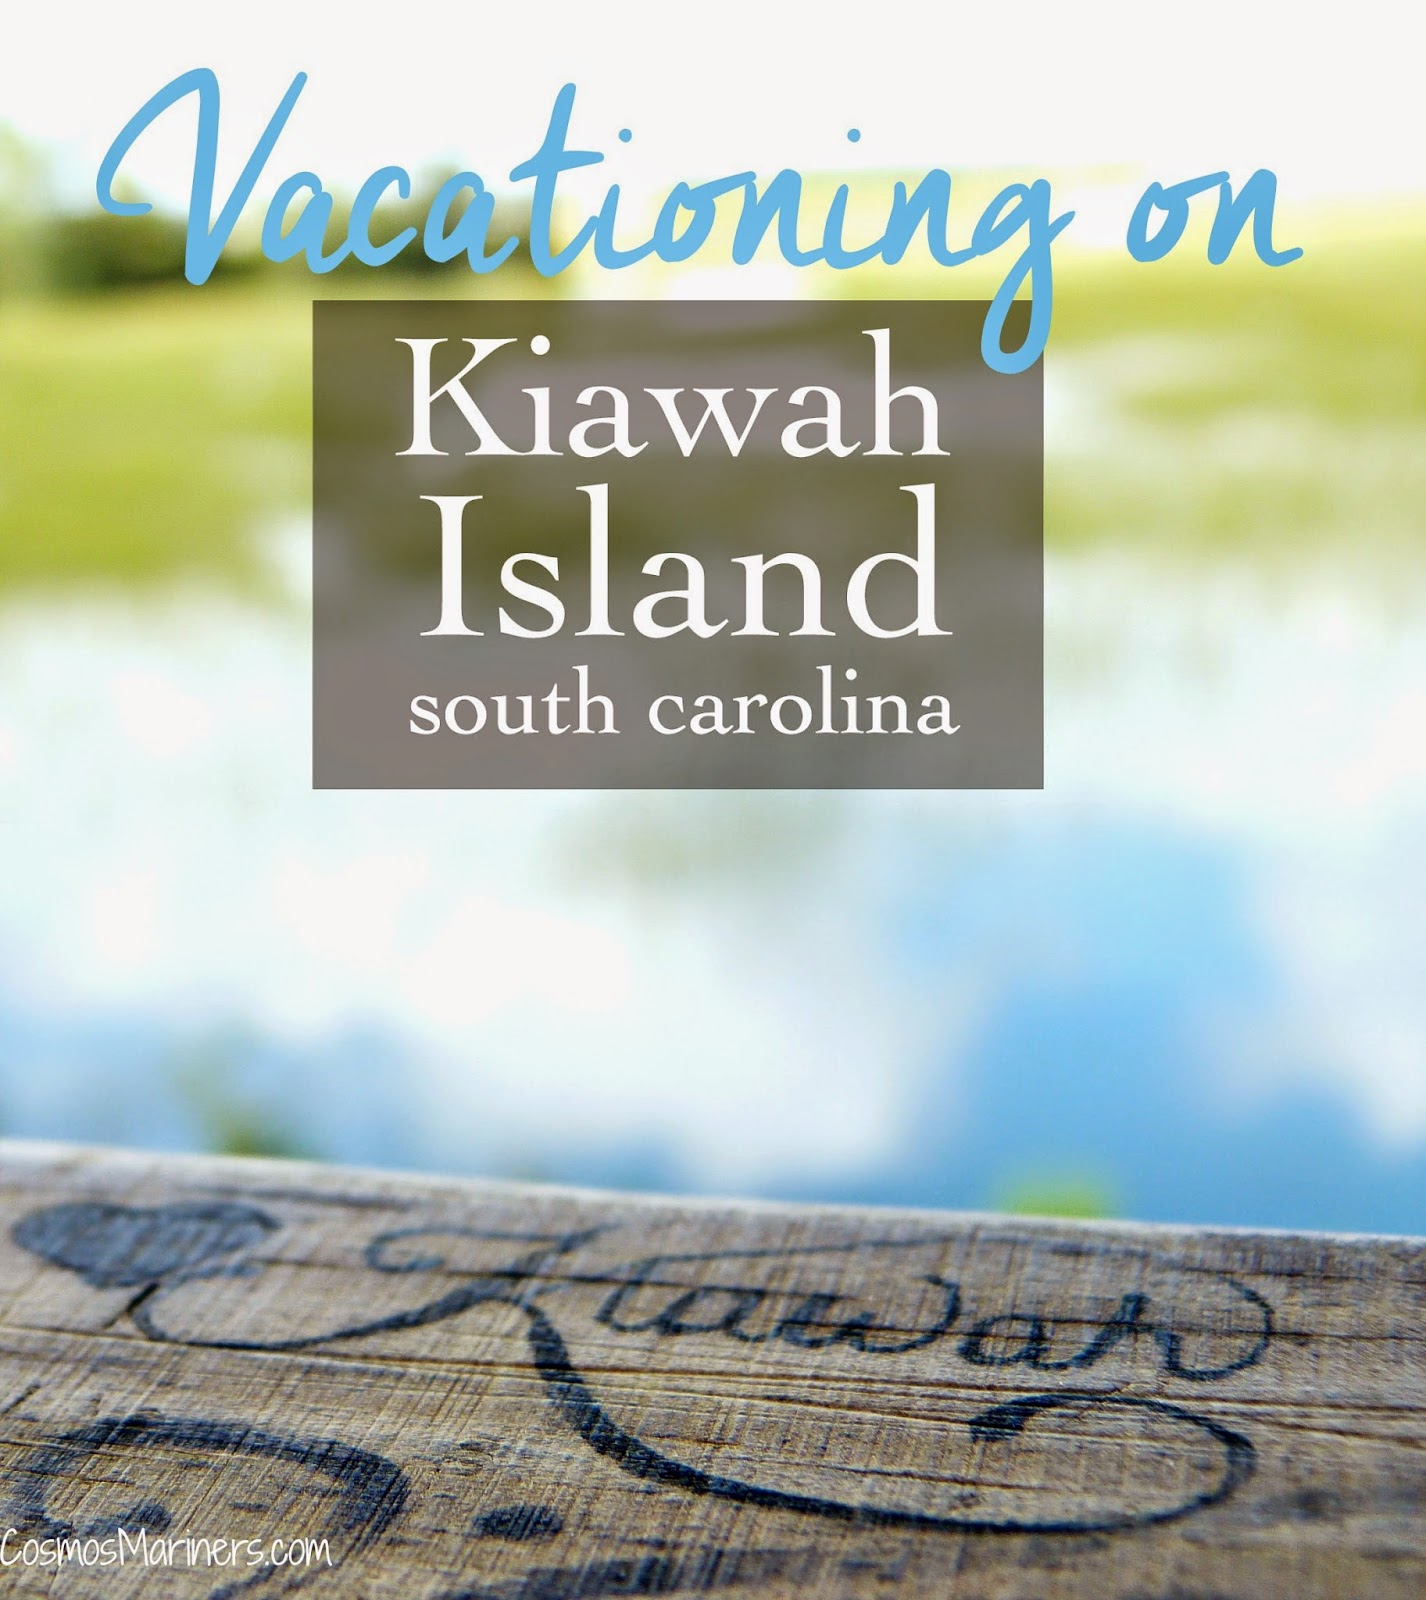 Vacationing on Kiawah Island, South Carolina: A Complete Guide | CosmosMariners.com